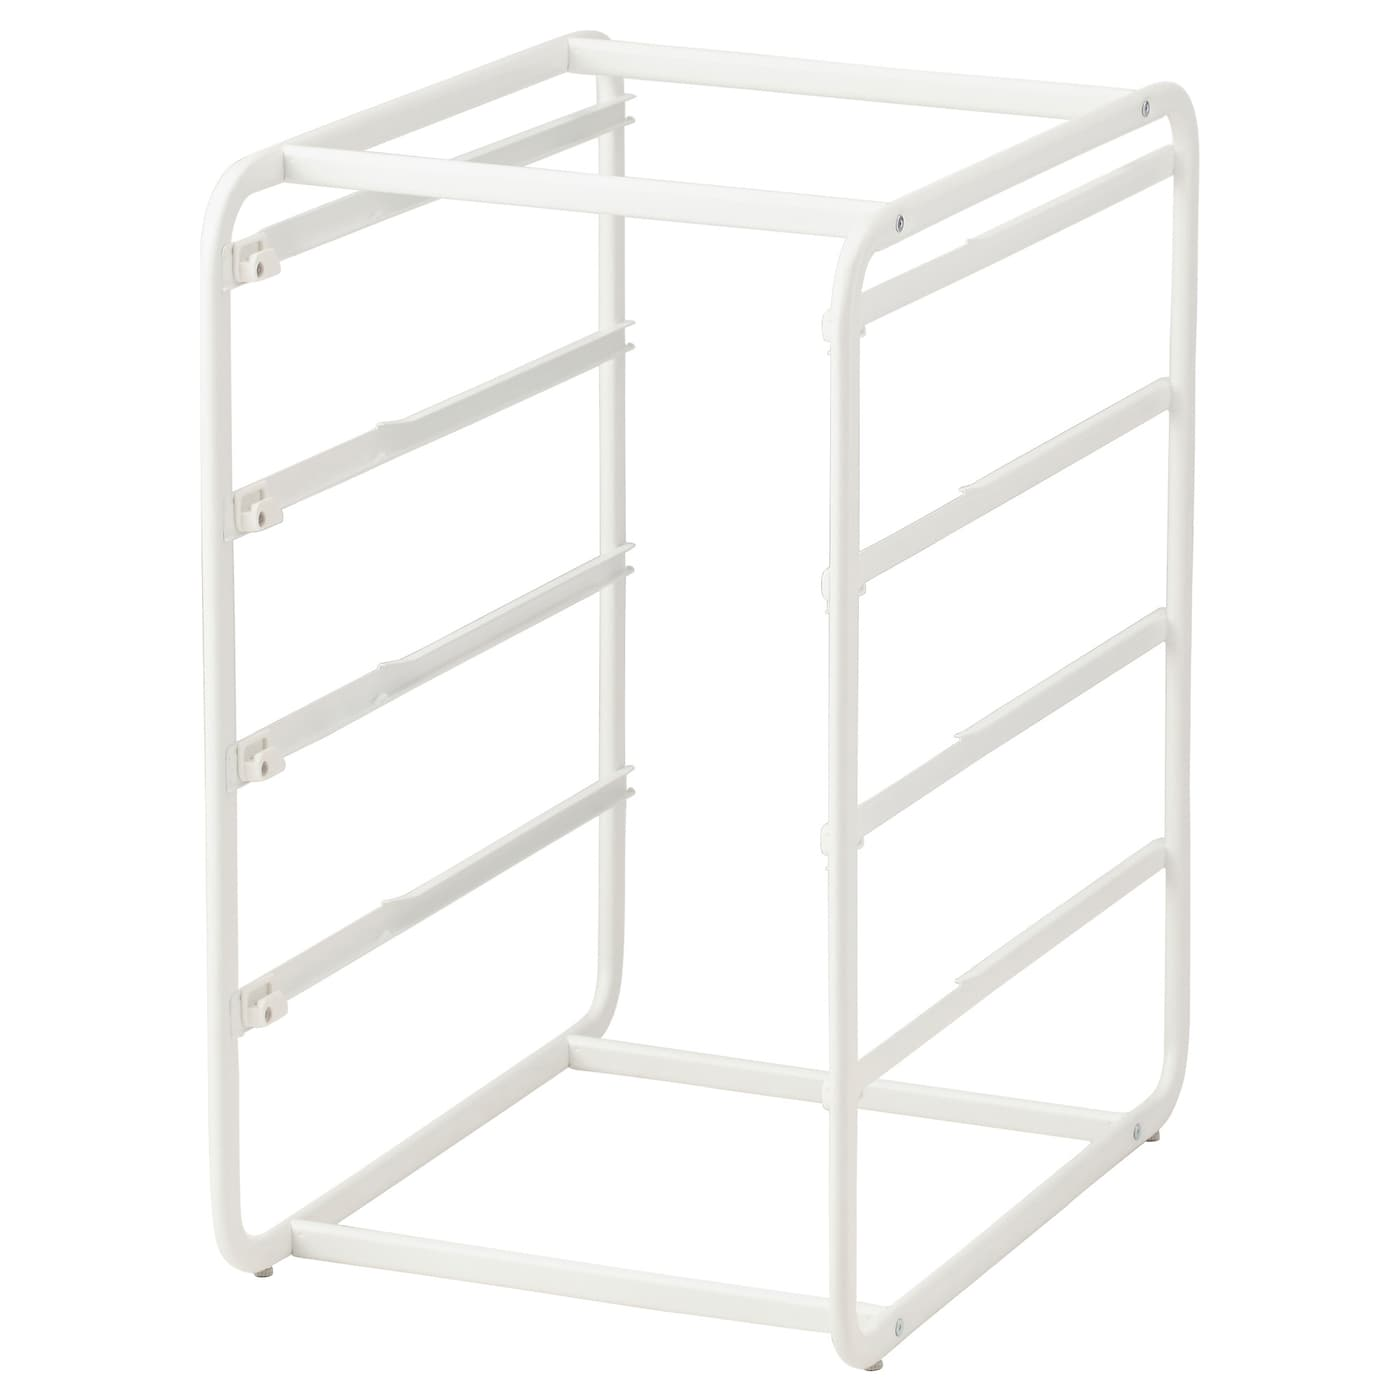 IKEA ALGOT frame Can also be used in bathrooms and other damp areas indoors.